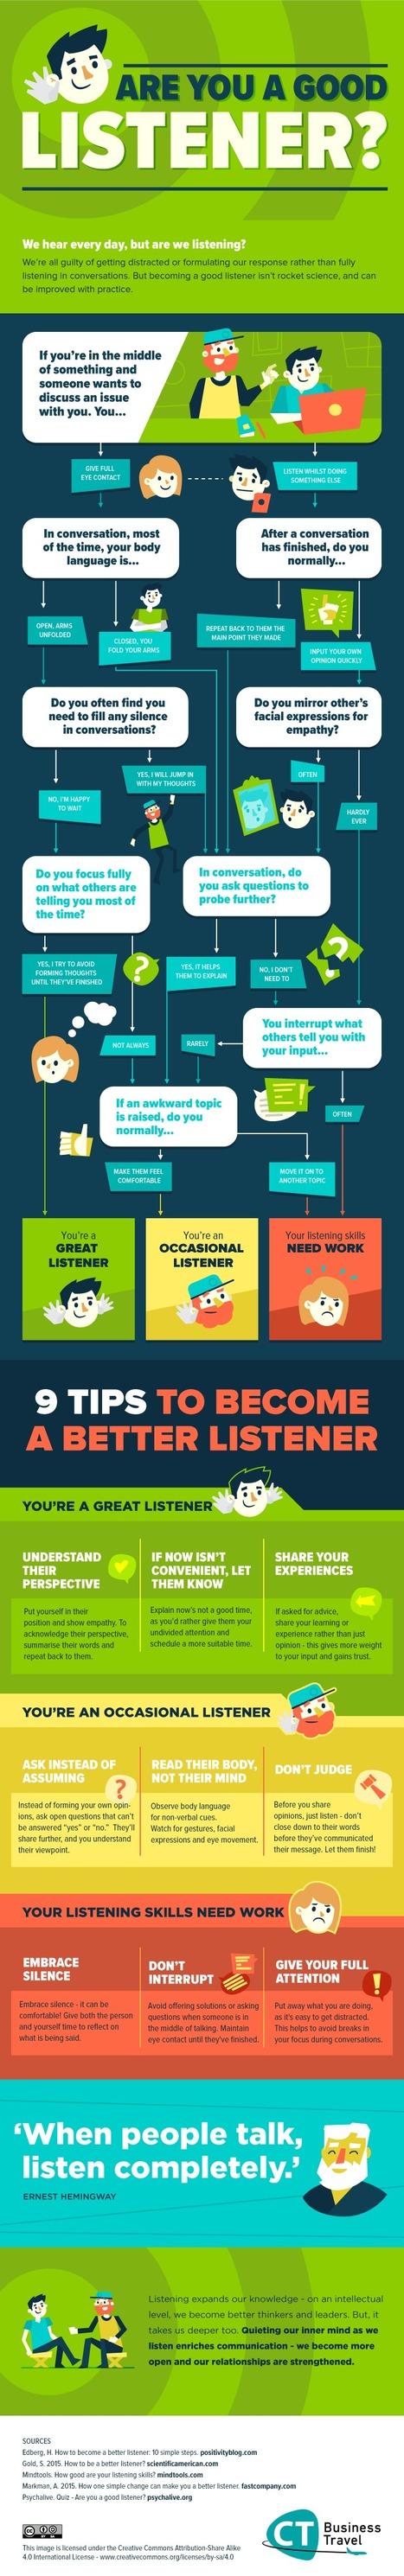 Are you a good listener? | #Infographic #Communication #EQ #EmotionalIntelligence | Soup for thought | Scoop.it